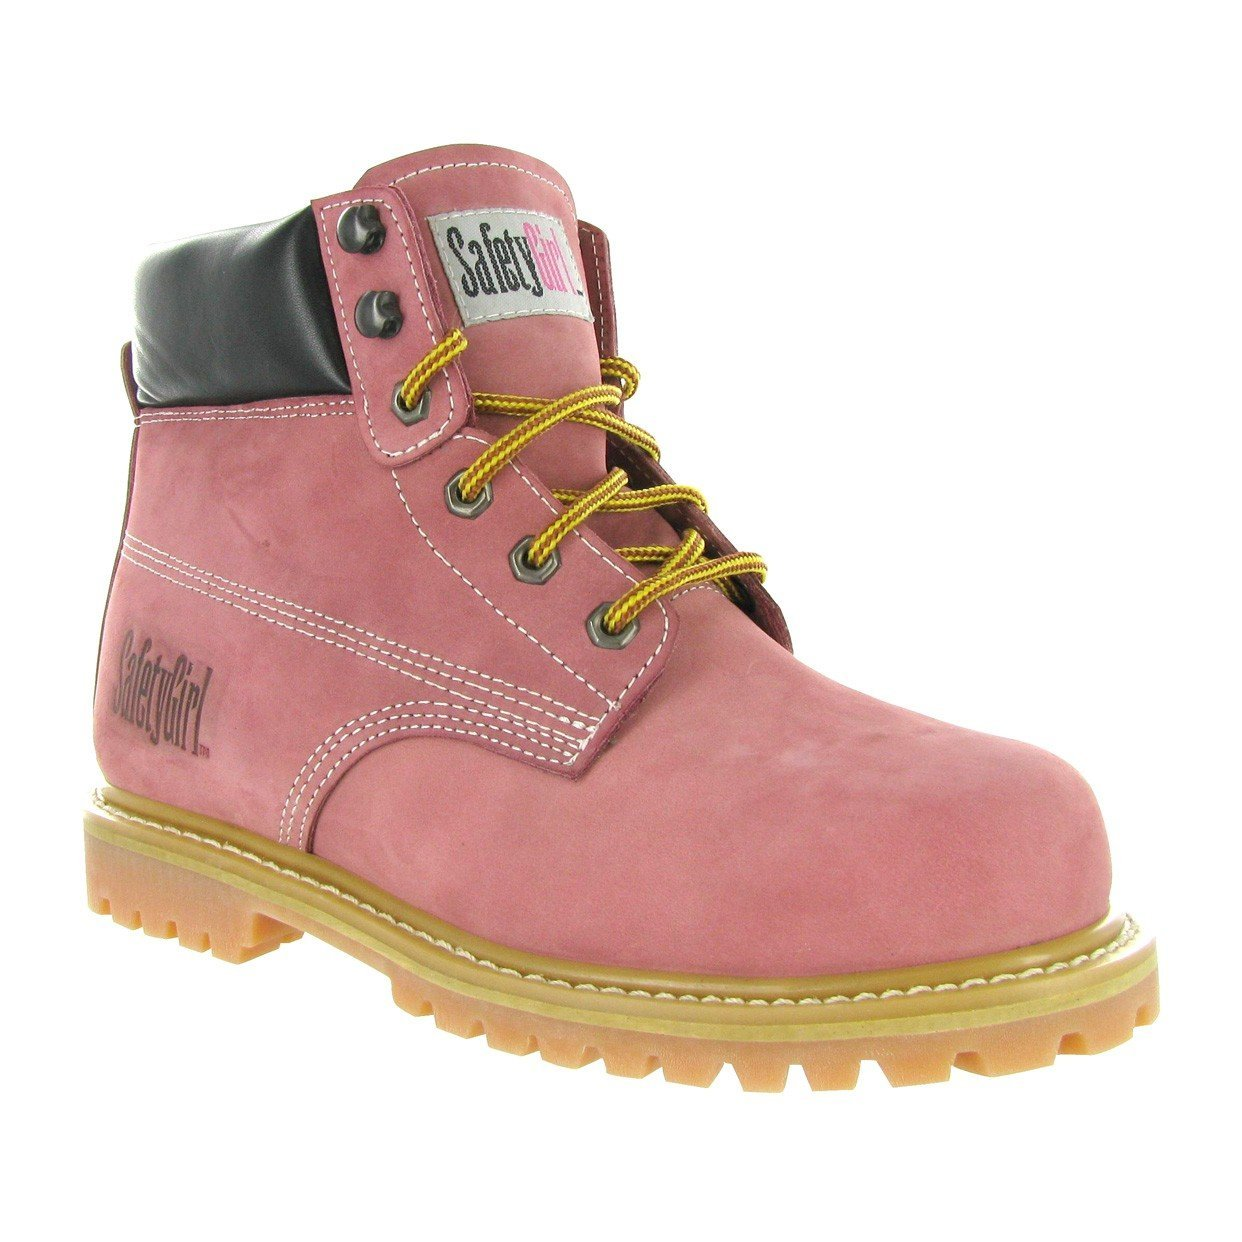 f841b7e81f2 Get Quotations · Safety Girl GS003-Lt Pink-7W Steel Toe Work Boots - Light  Pink -